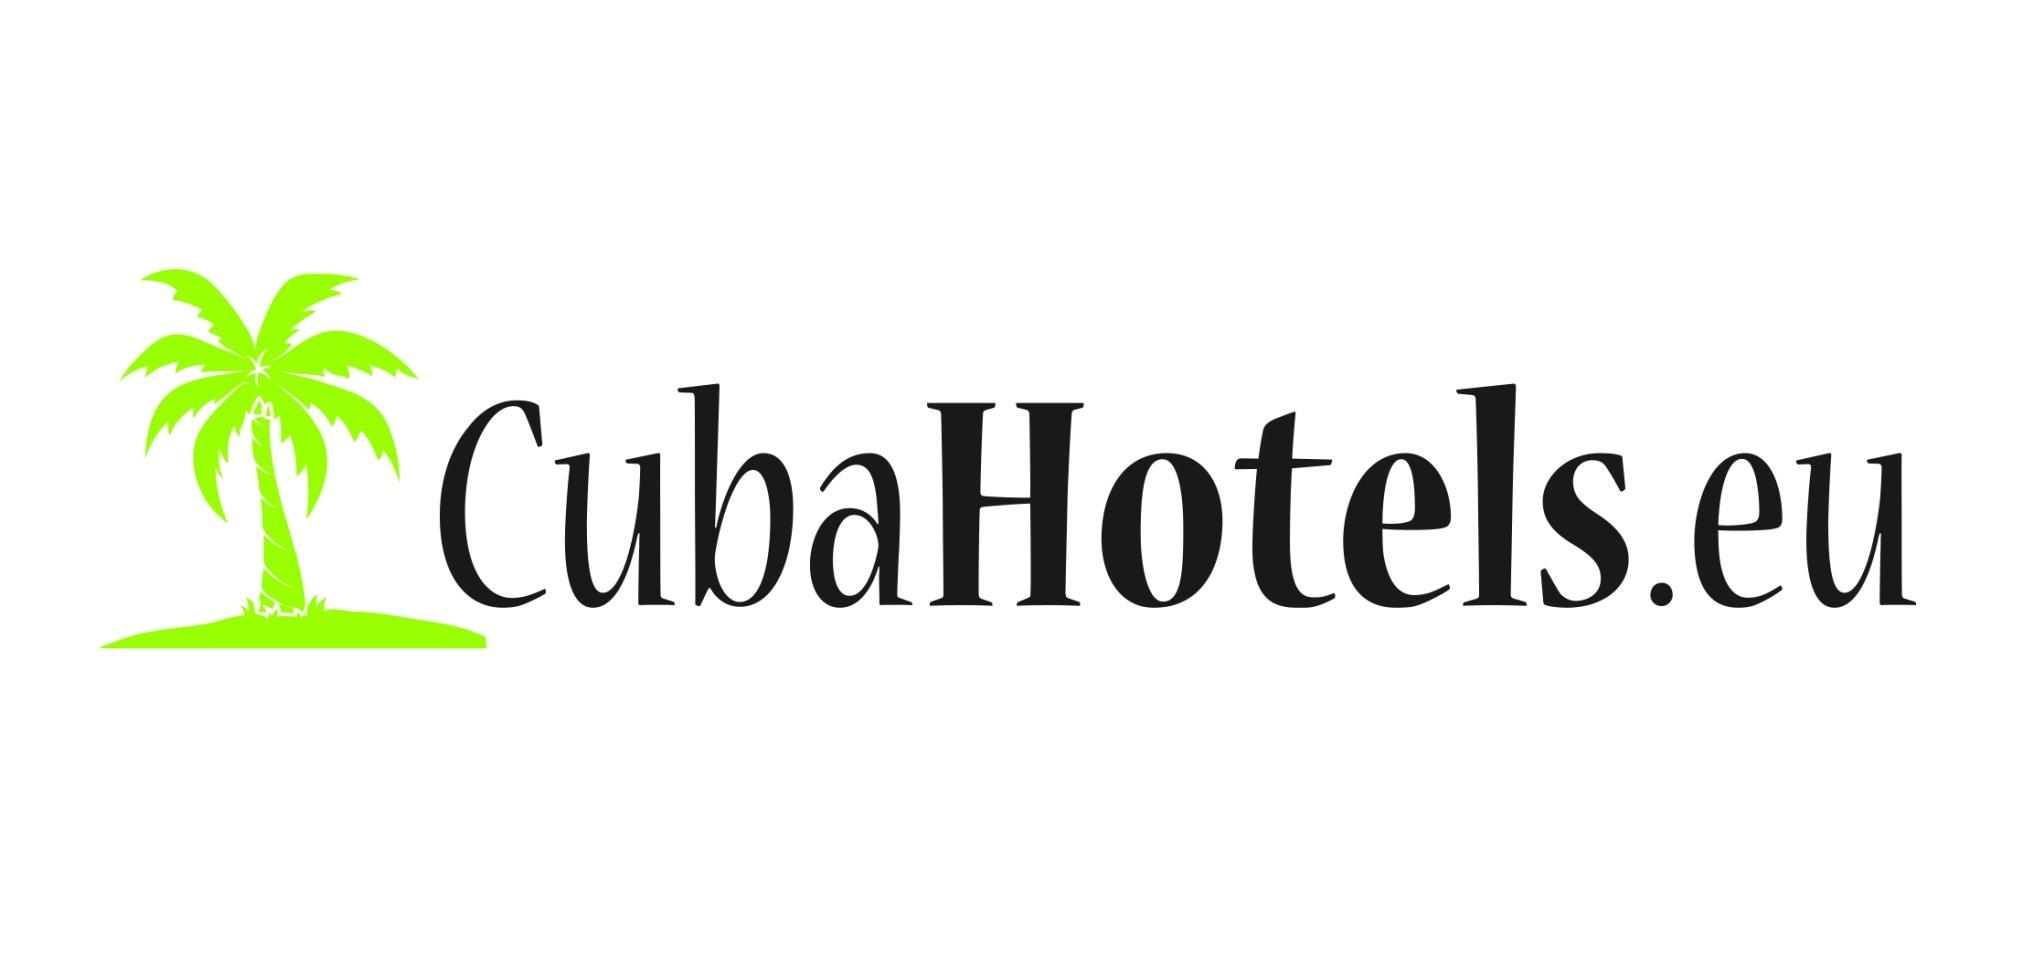 More than 450 hotels in Cuba for the best prices